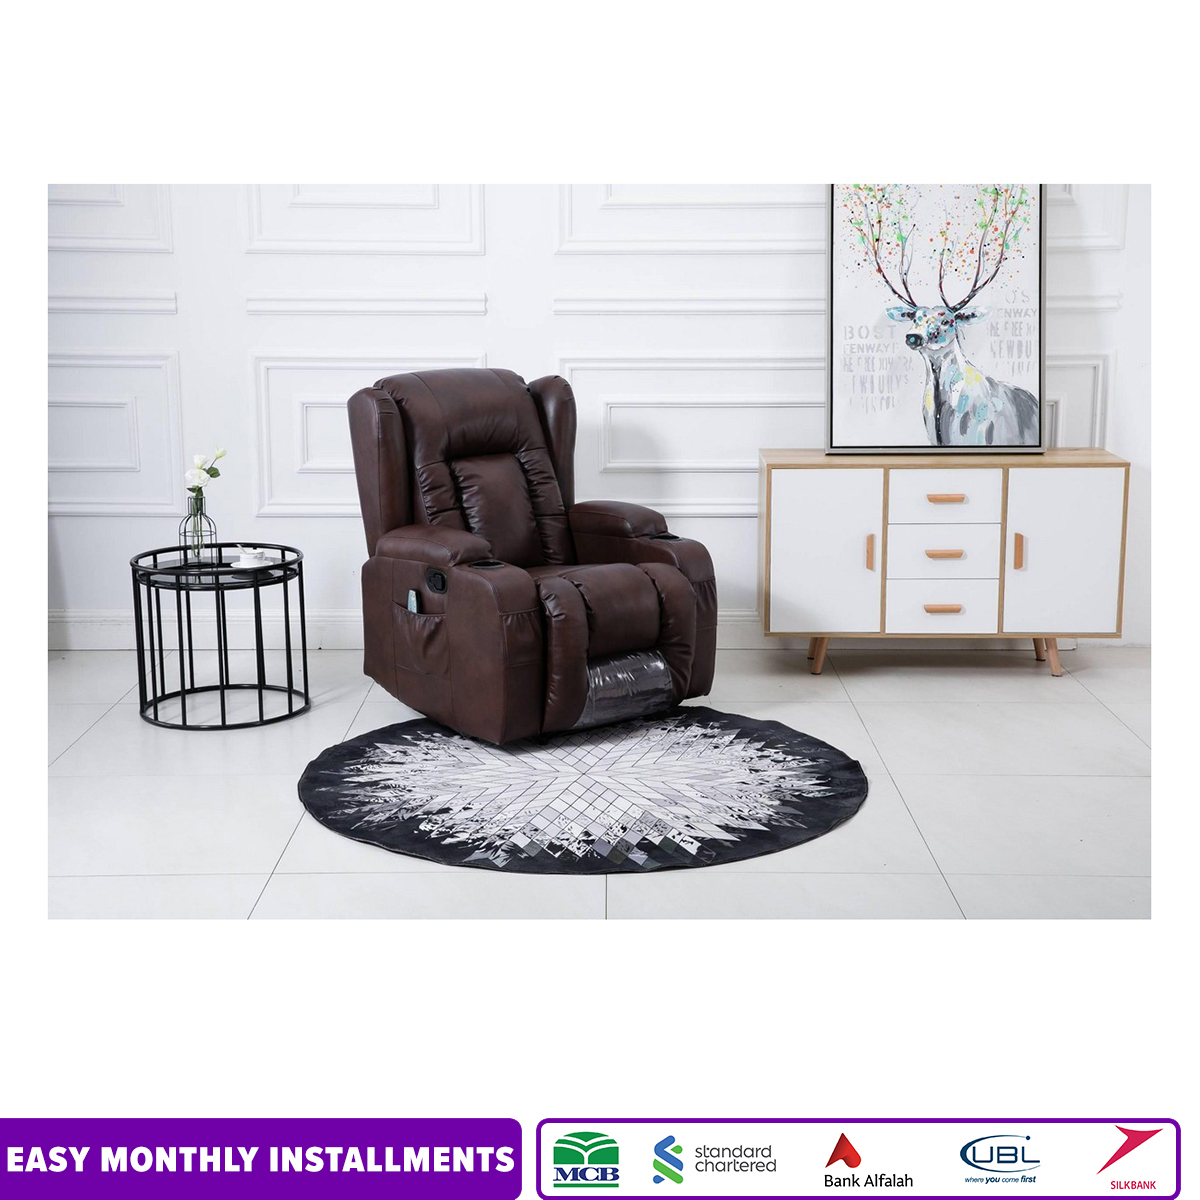 IMPORTED RECLINER SOFA WITH HEATING PADS AND VIBRATION MASSAGE FUNCTIONS